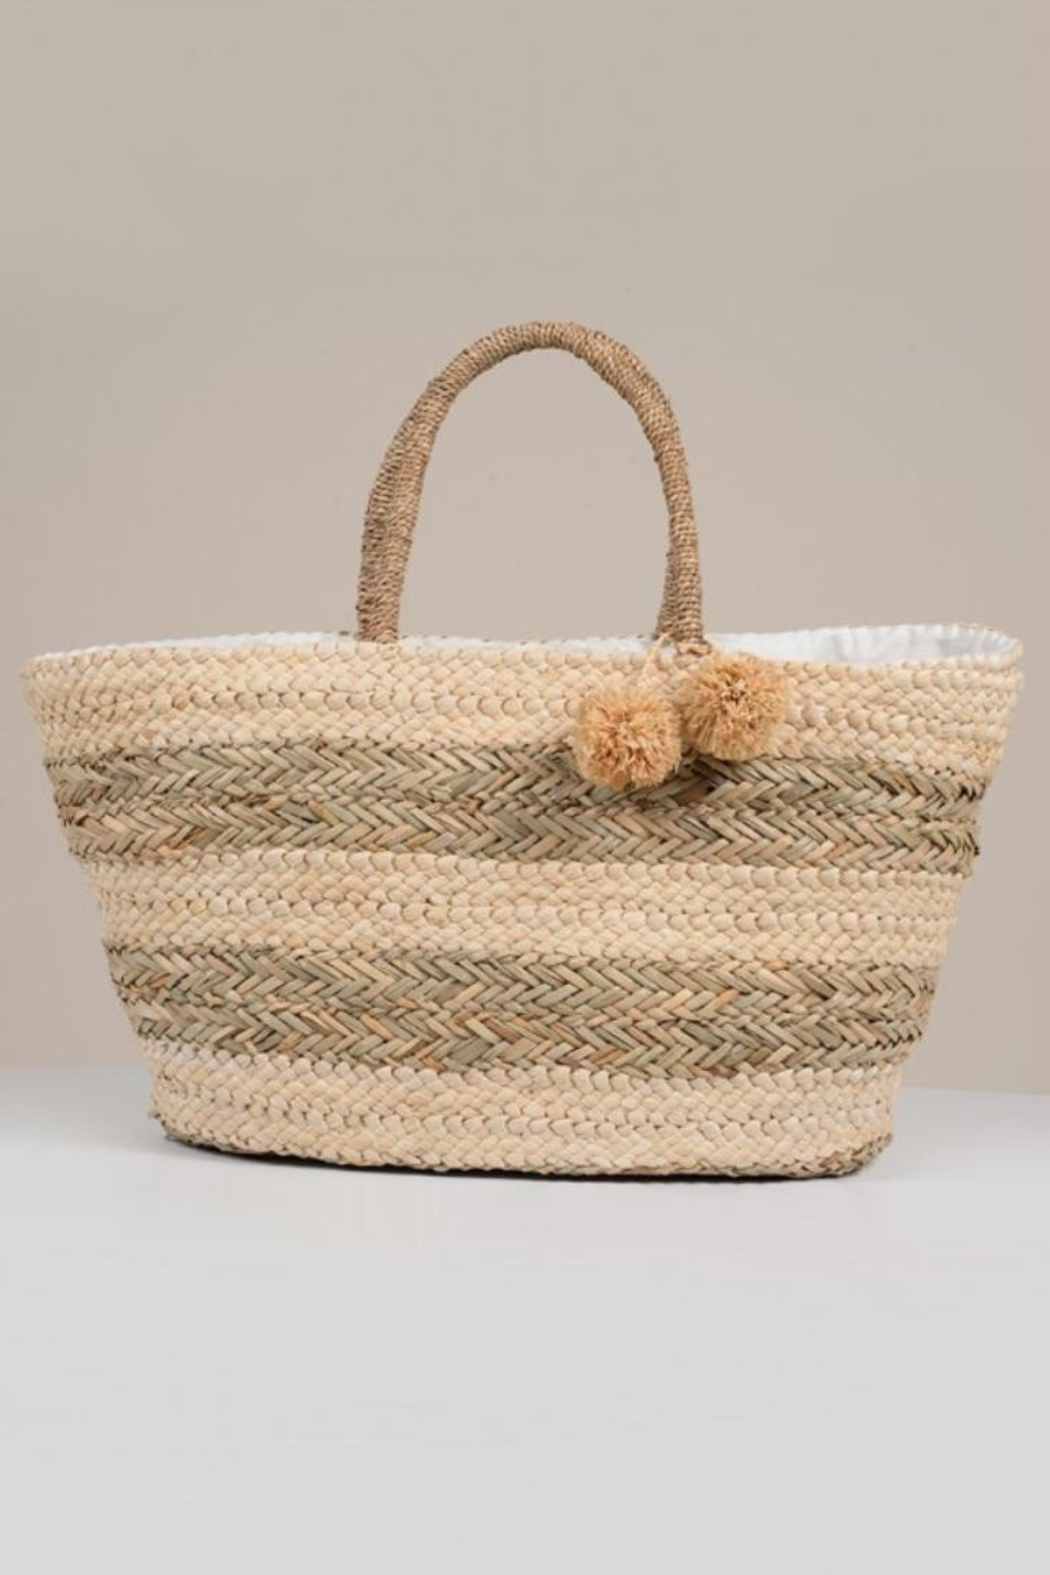 Molly Bracken Straw Beach Bag - Main Image